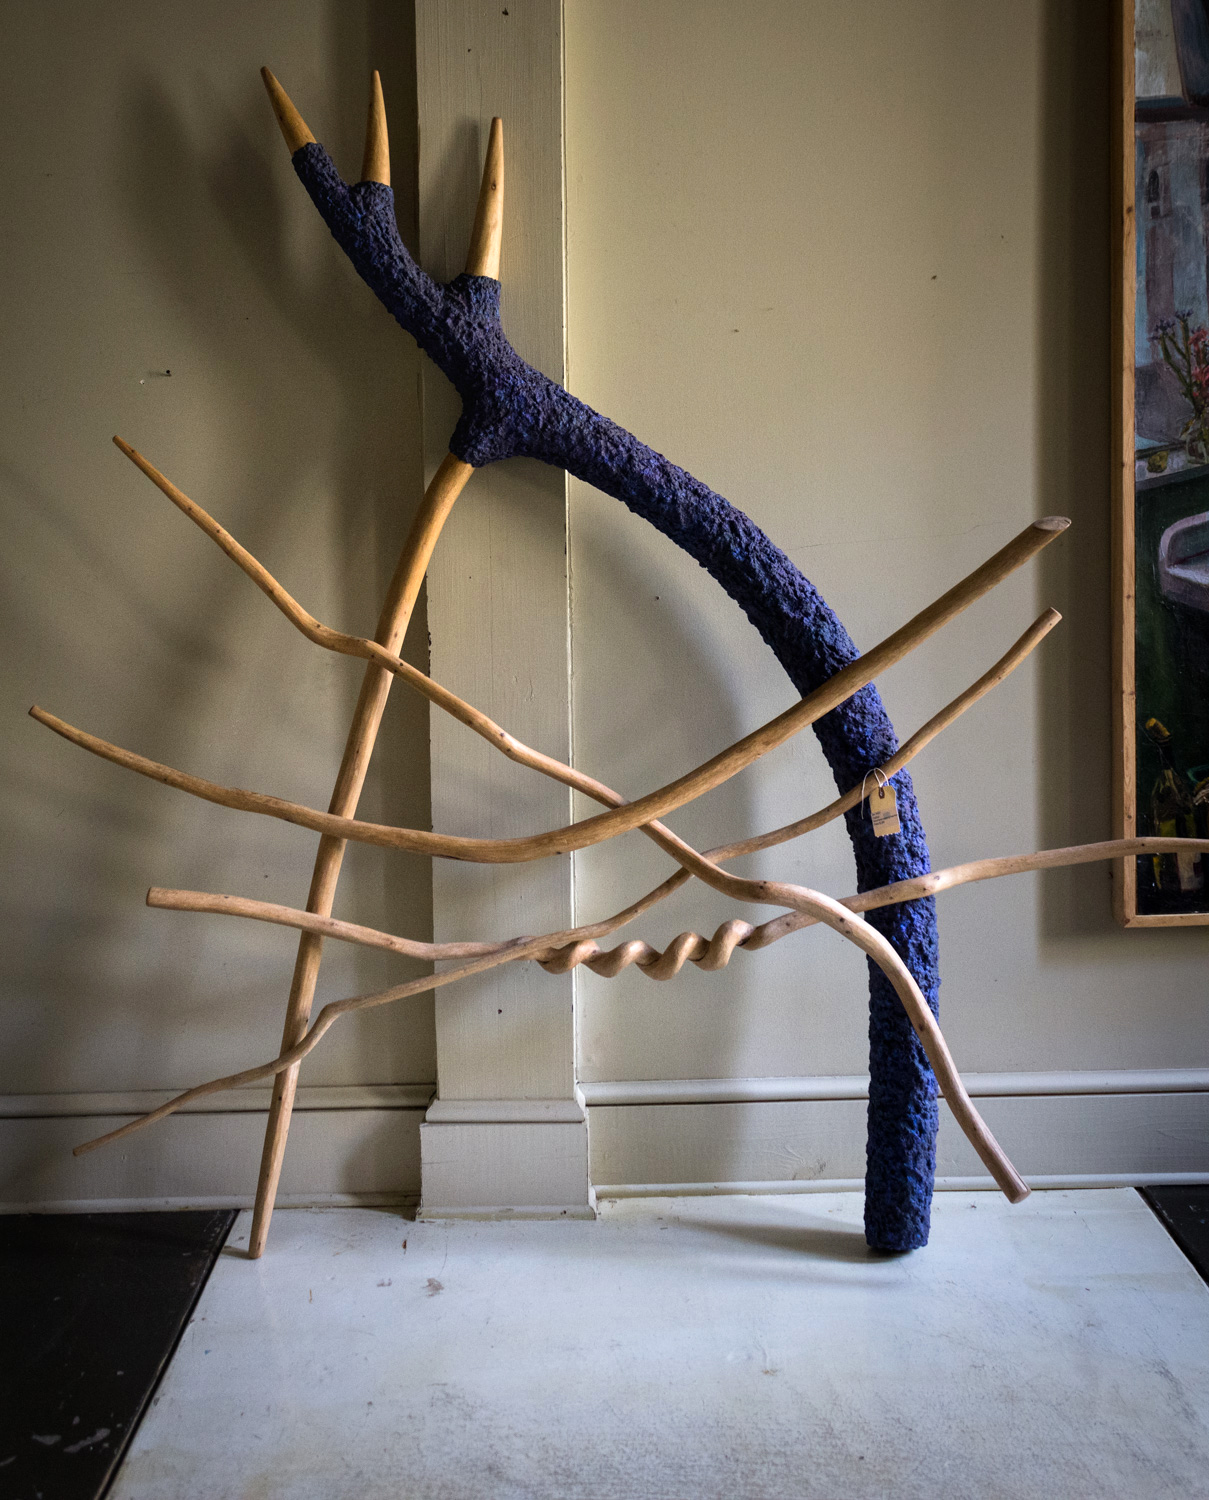 Mixed Media Sculpture by Duane Paxson, Purchase